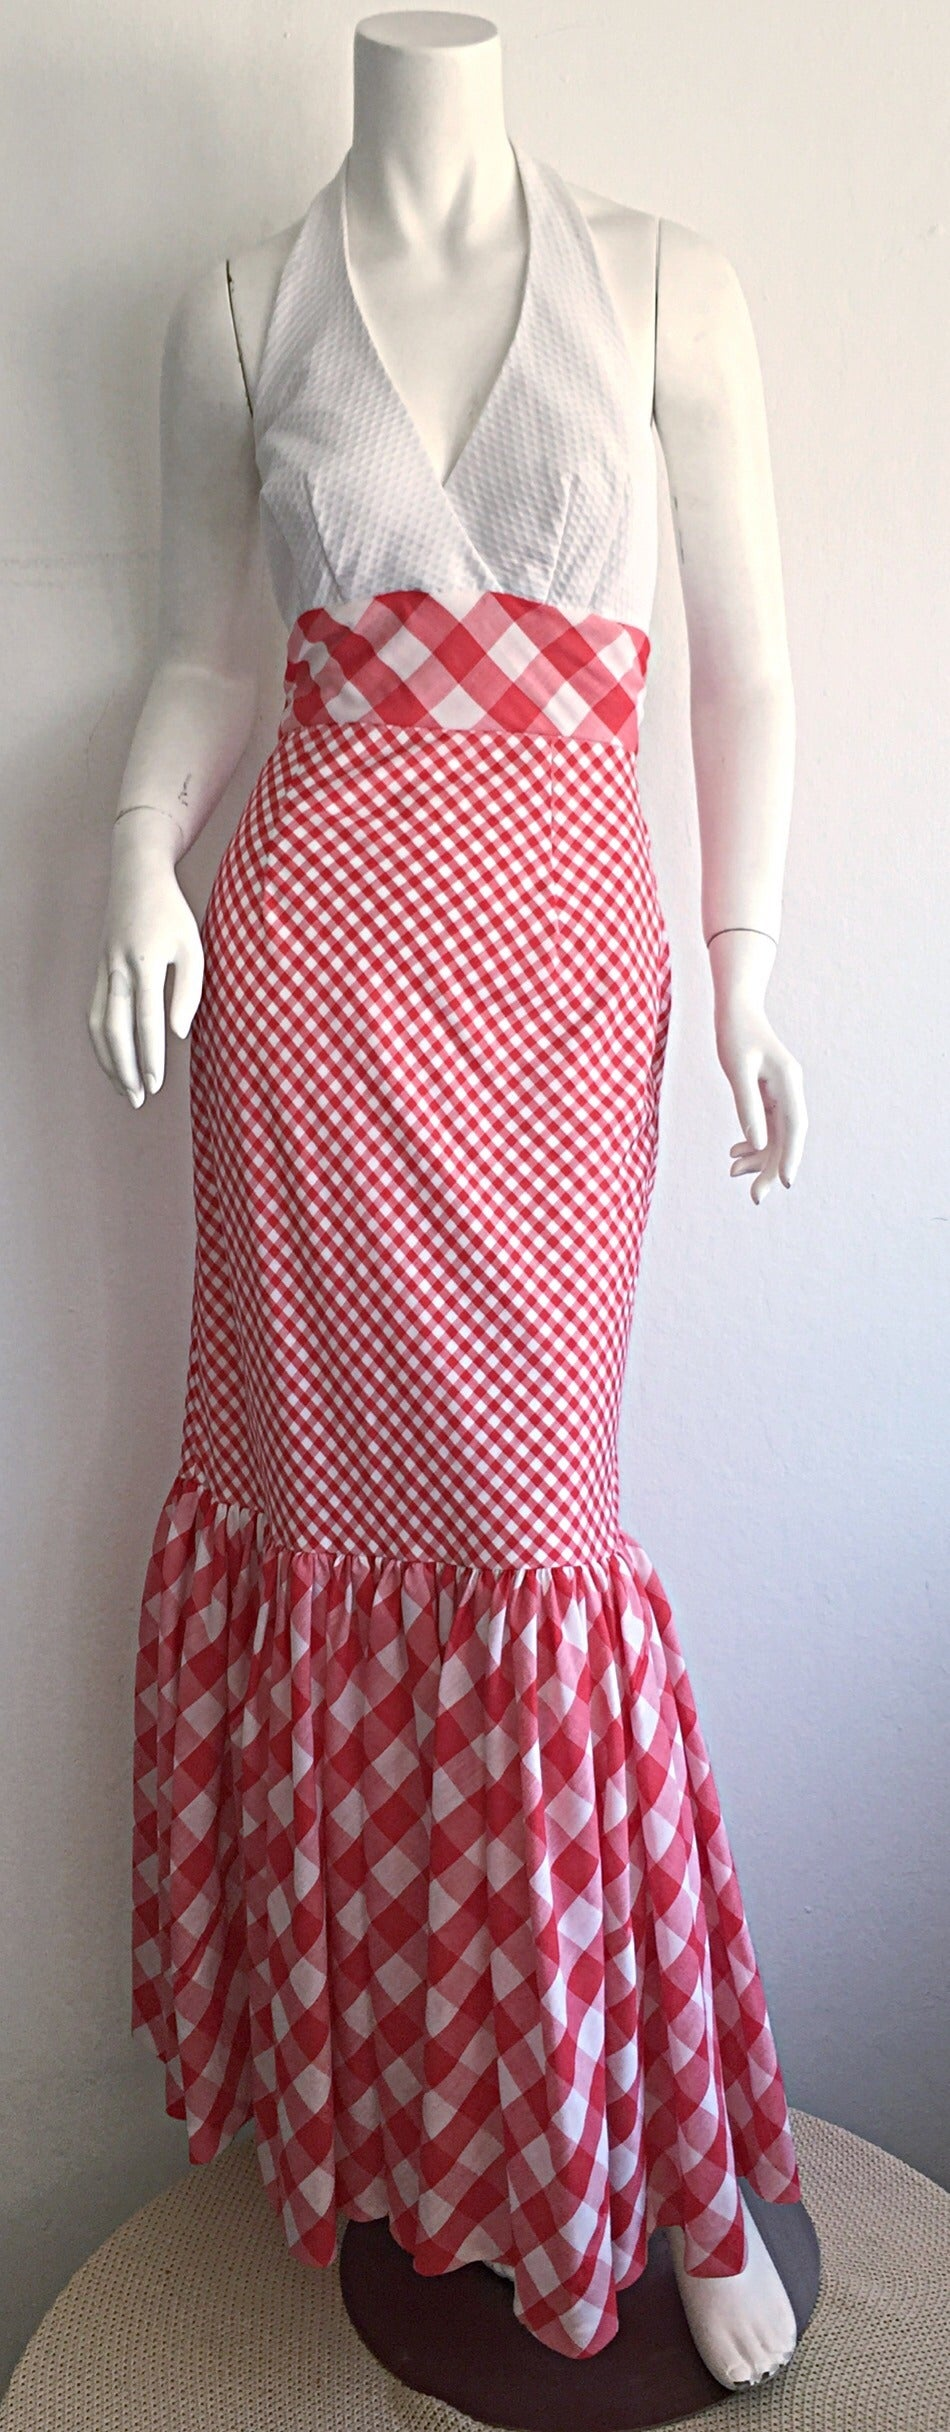 Amazing 1970s red and white plaid cotton halter maxi dress! White honeycomb fabric on bodice, with a full red+white plaid cotton skirt. Mermaid ruffle hem. Looks beautiful on. Perfect with sandals or wedges (and denim jacket) for day, or stunning